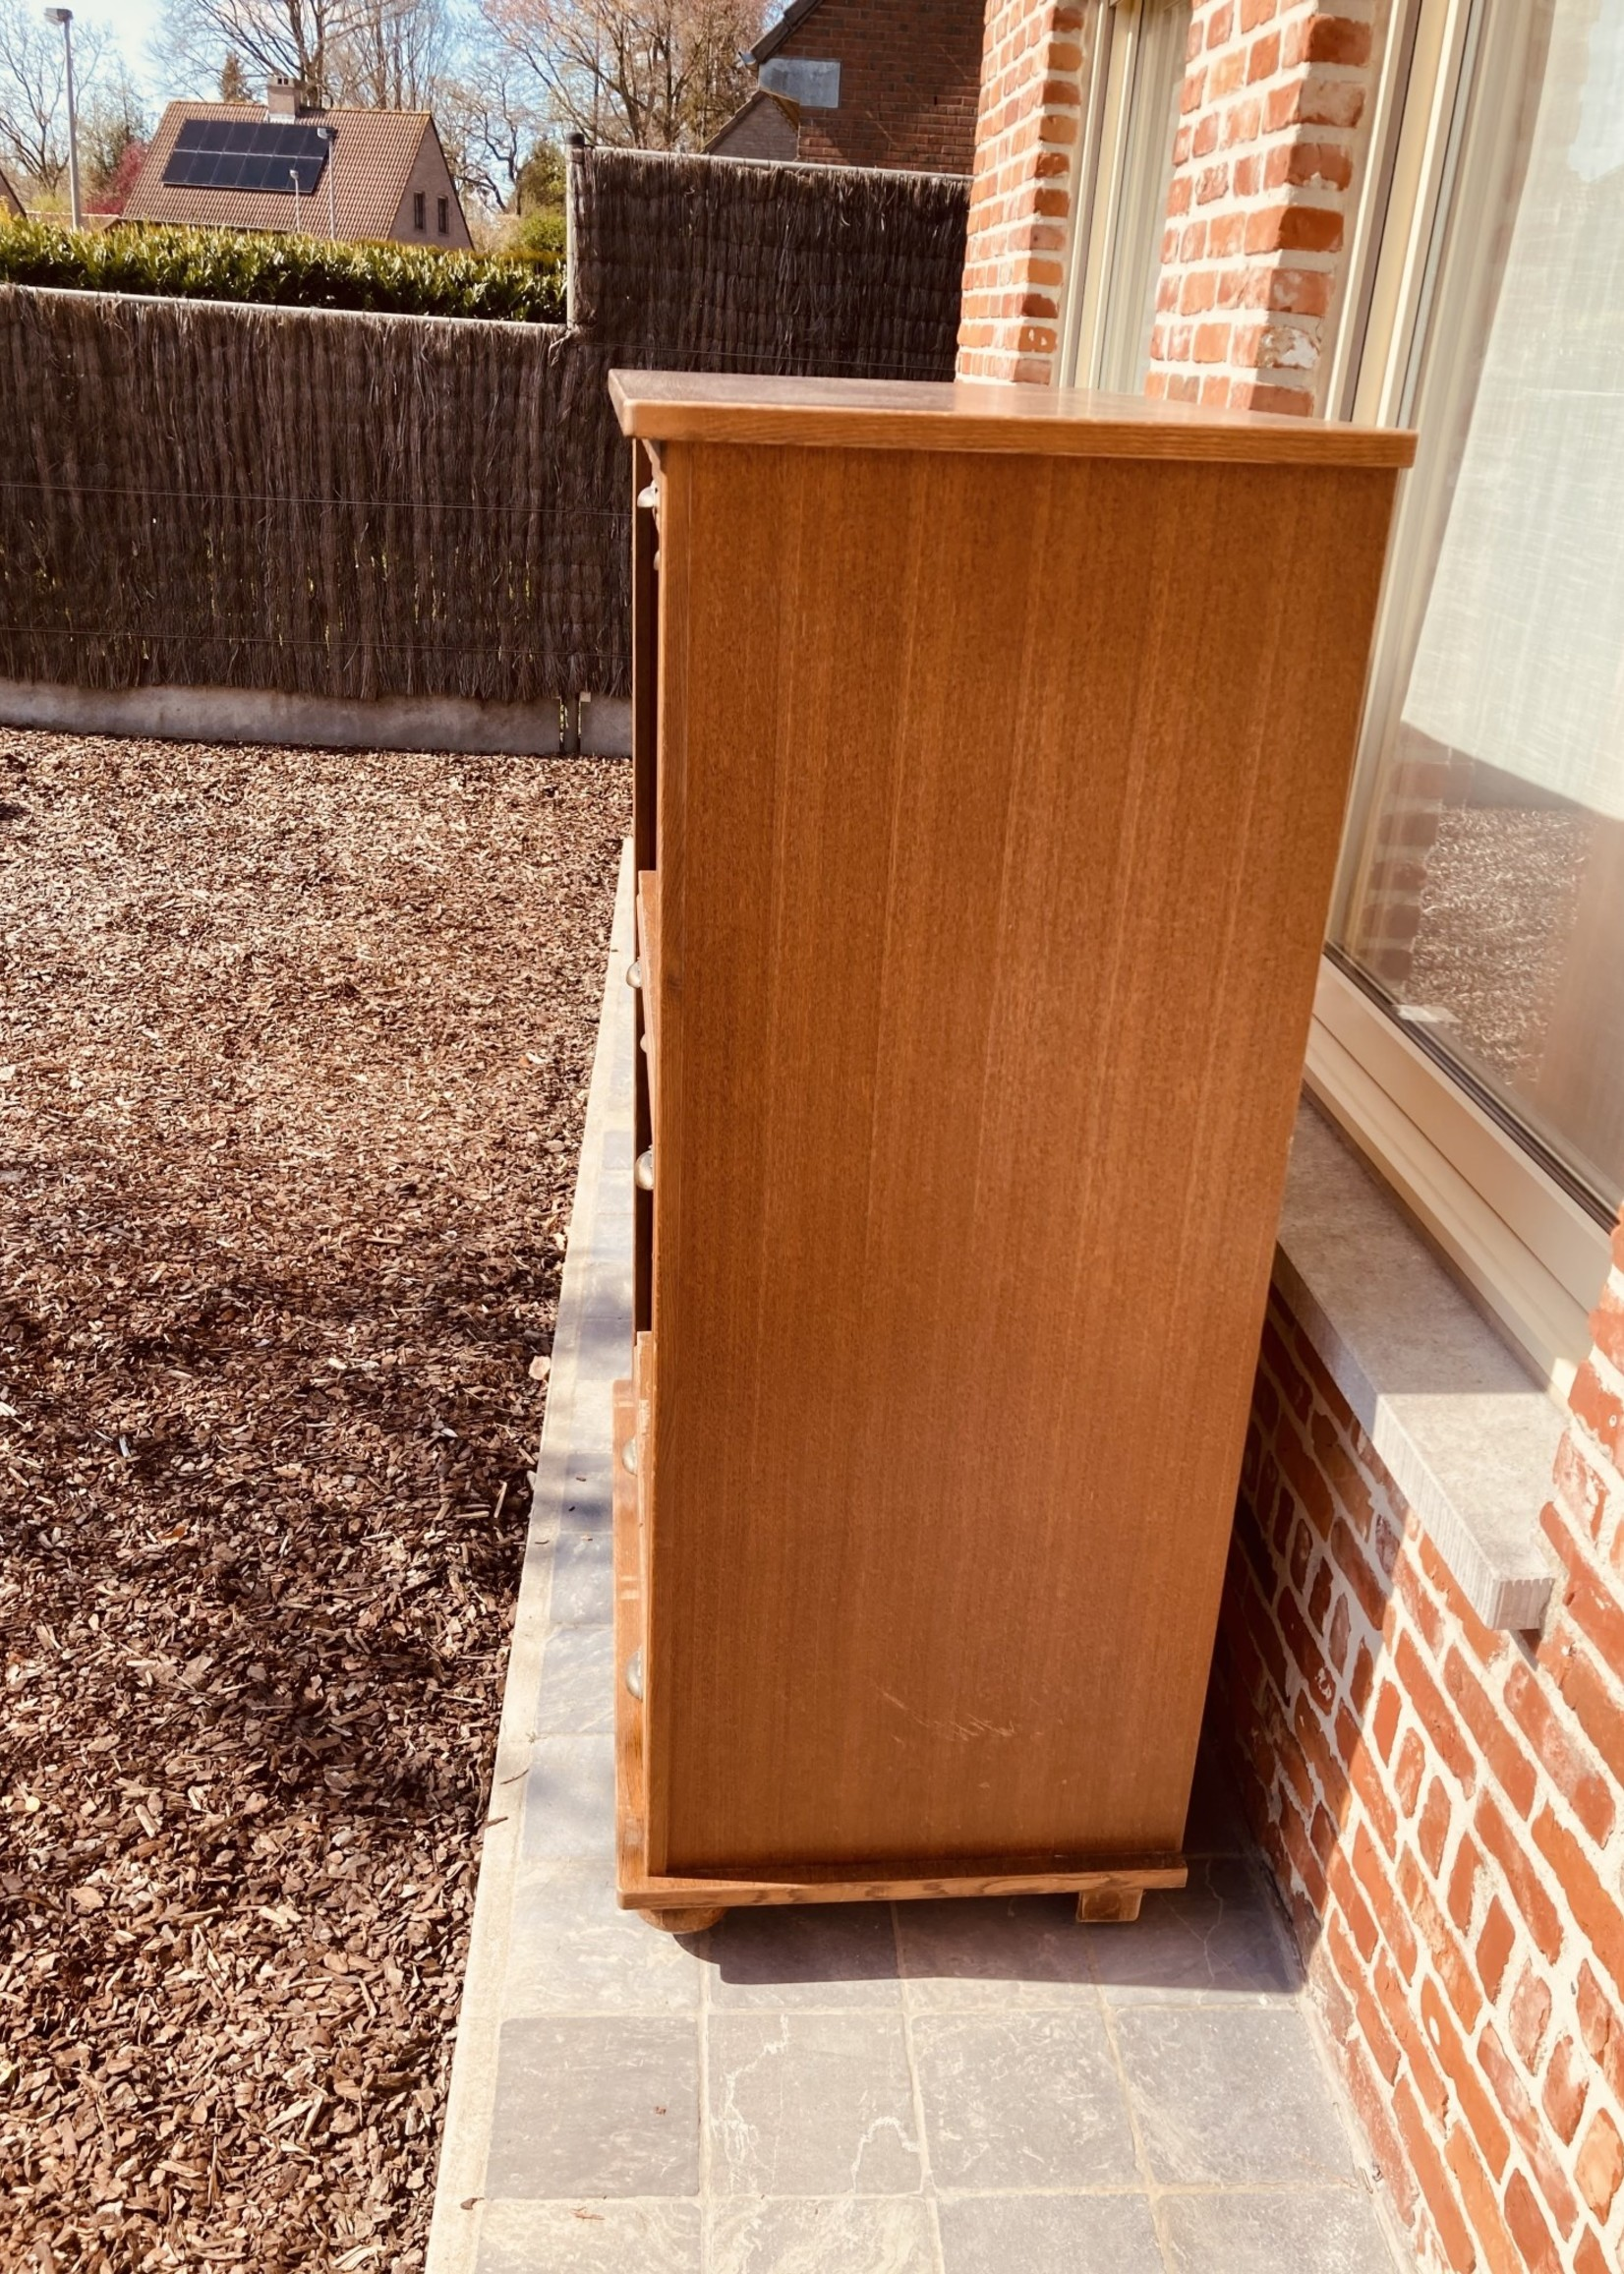 Wooden secretary or cabinet with roller shutter